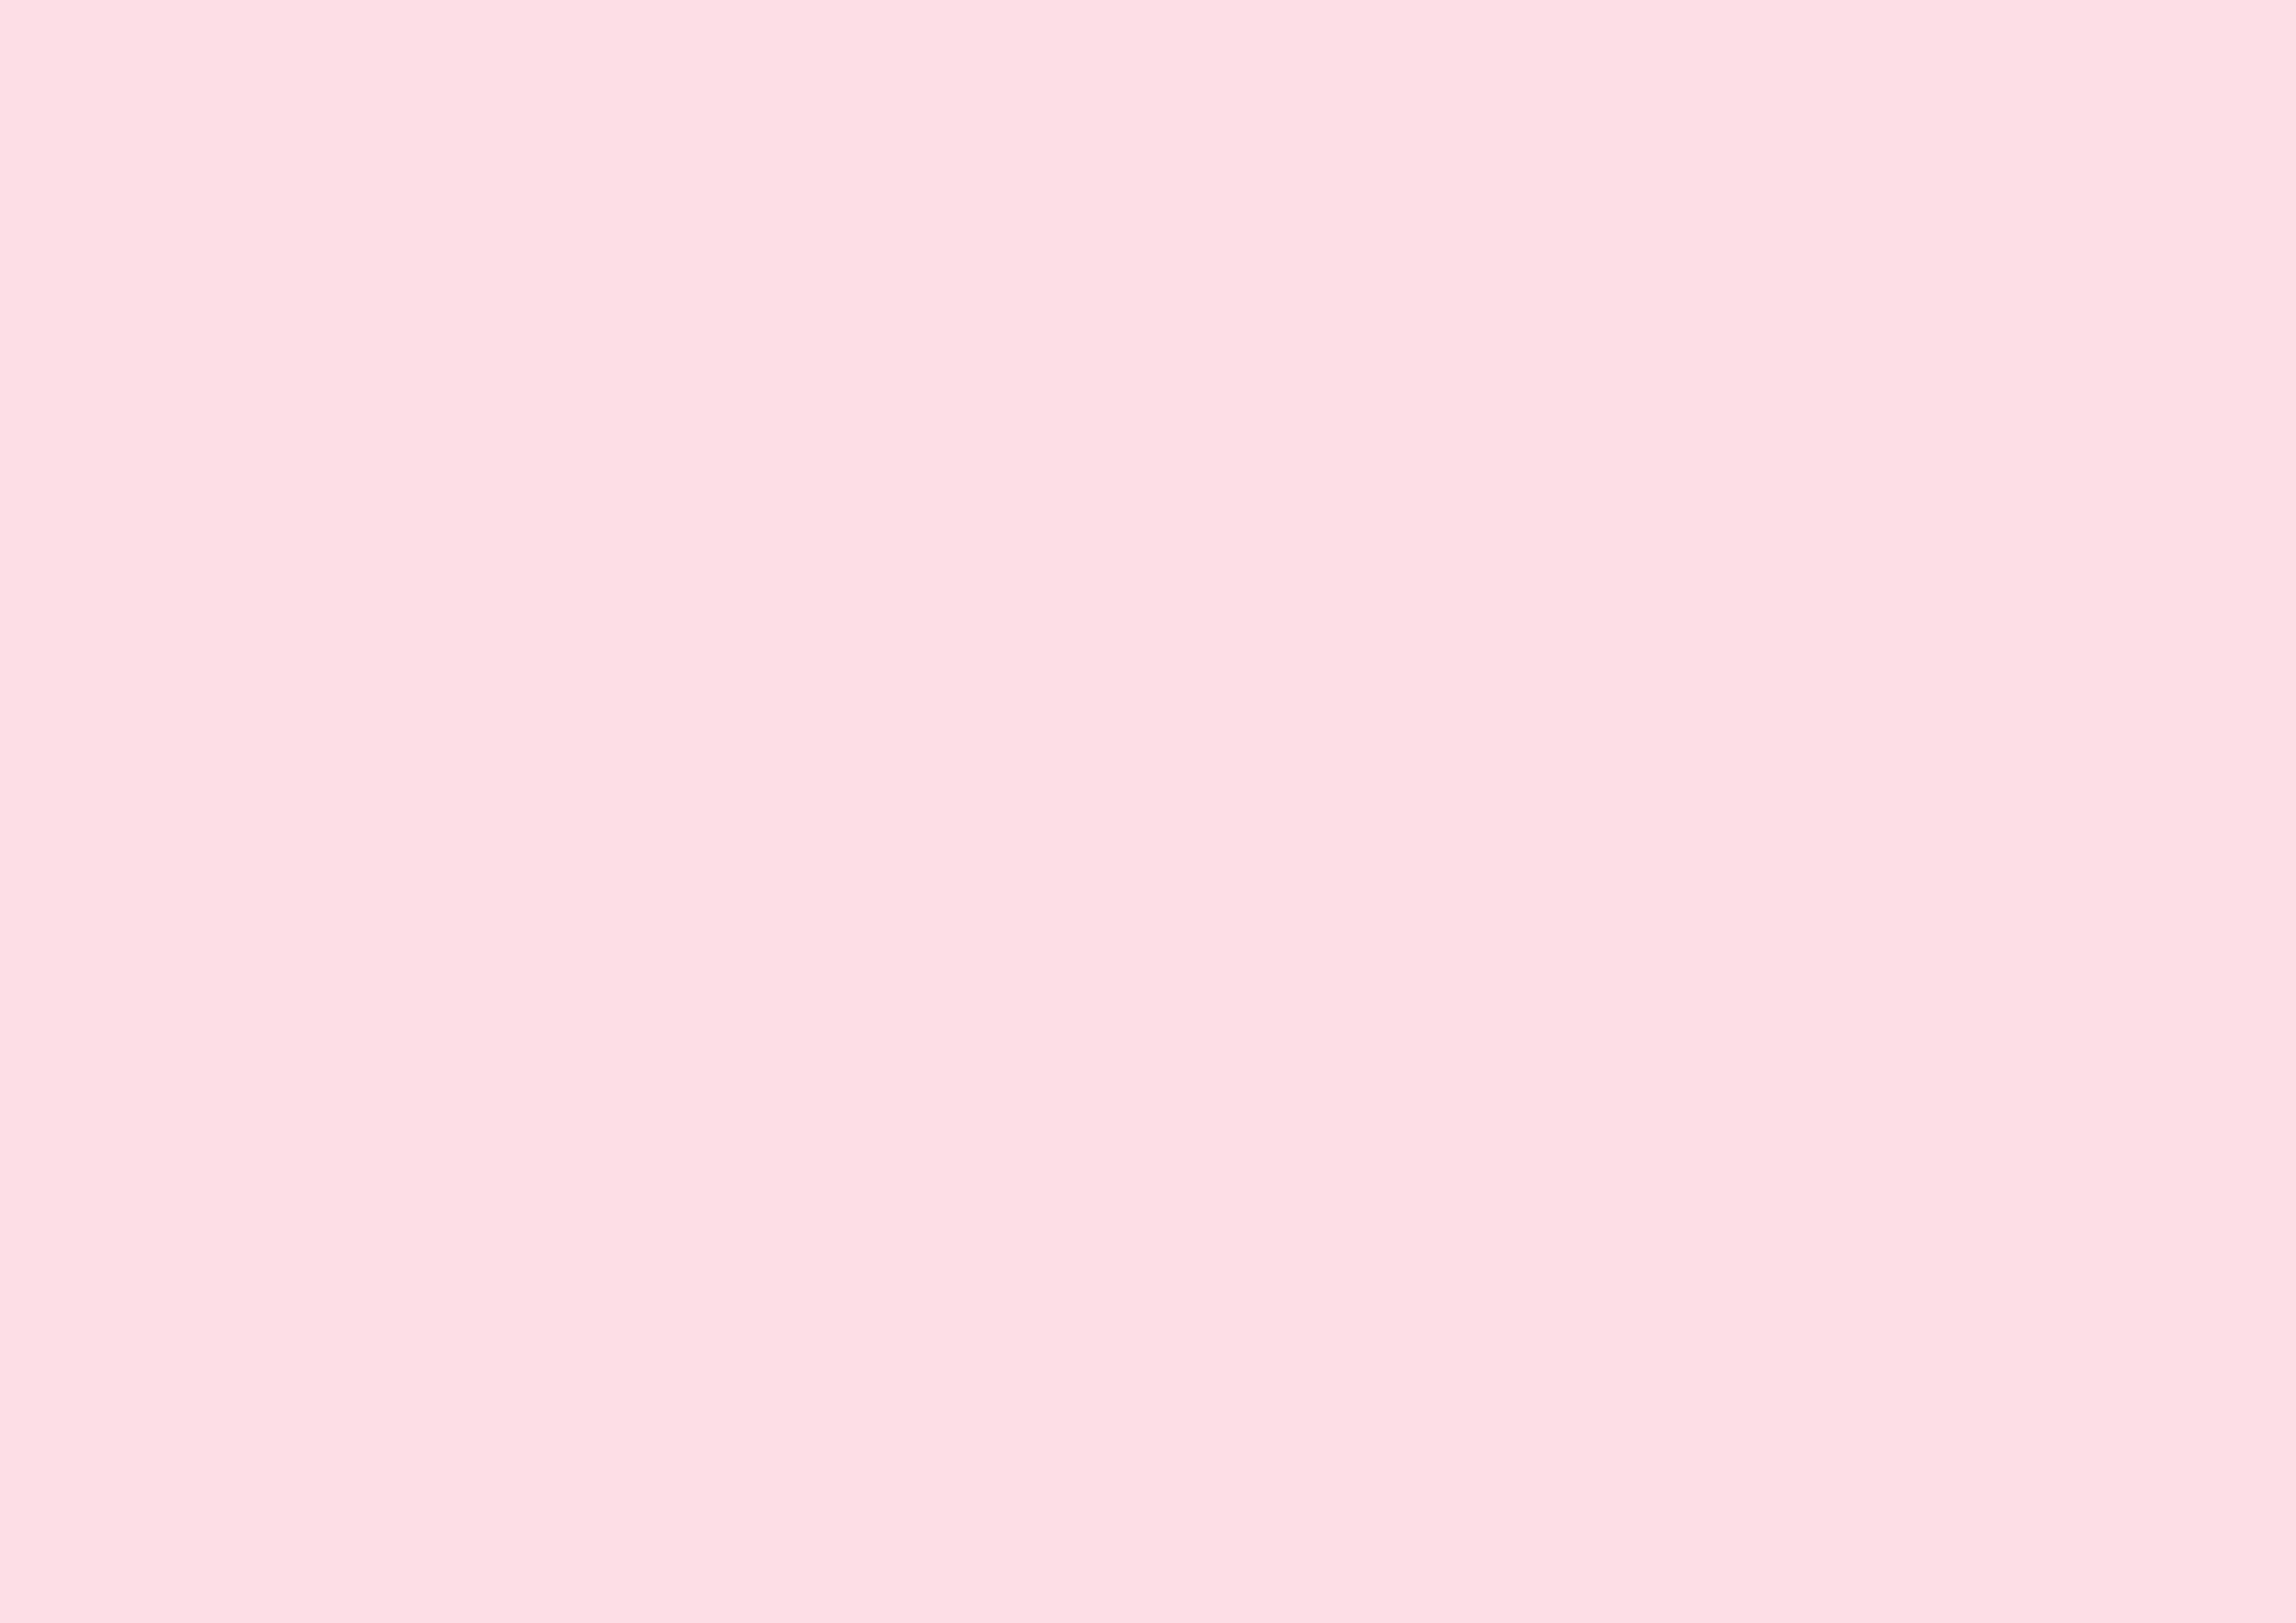 3508x2480 Piggy Pink Solid Color Background